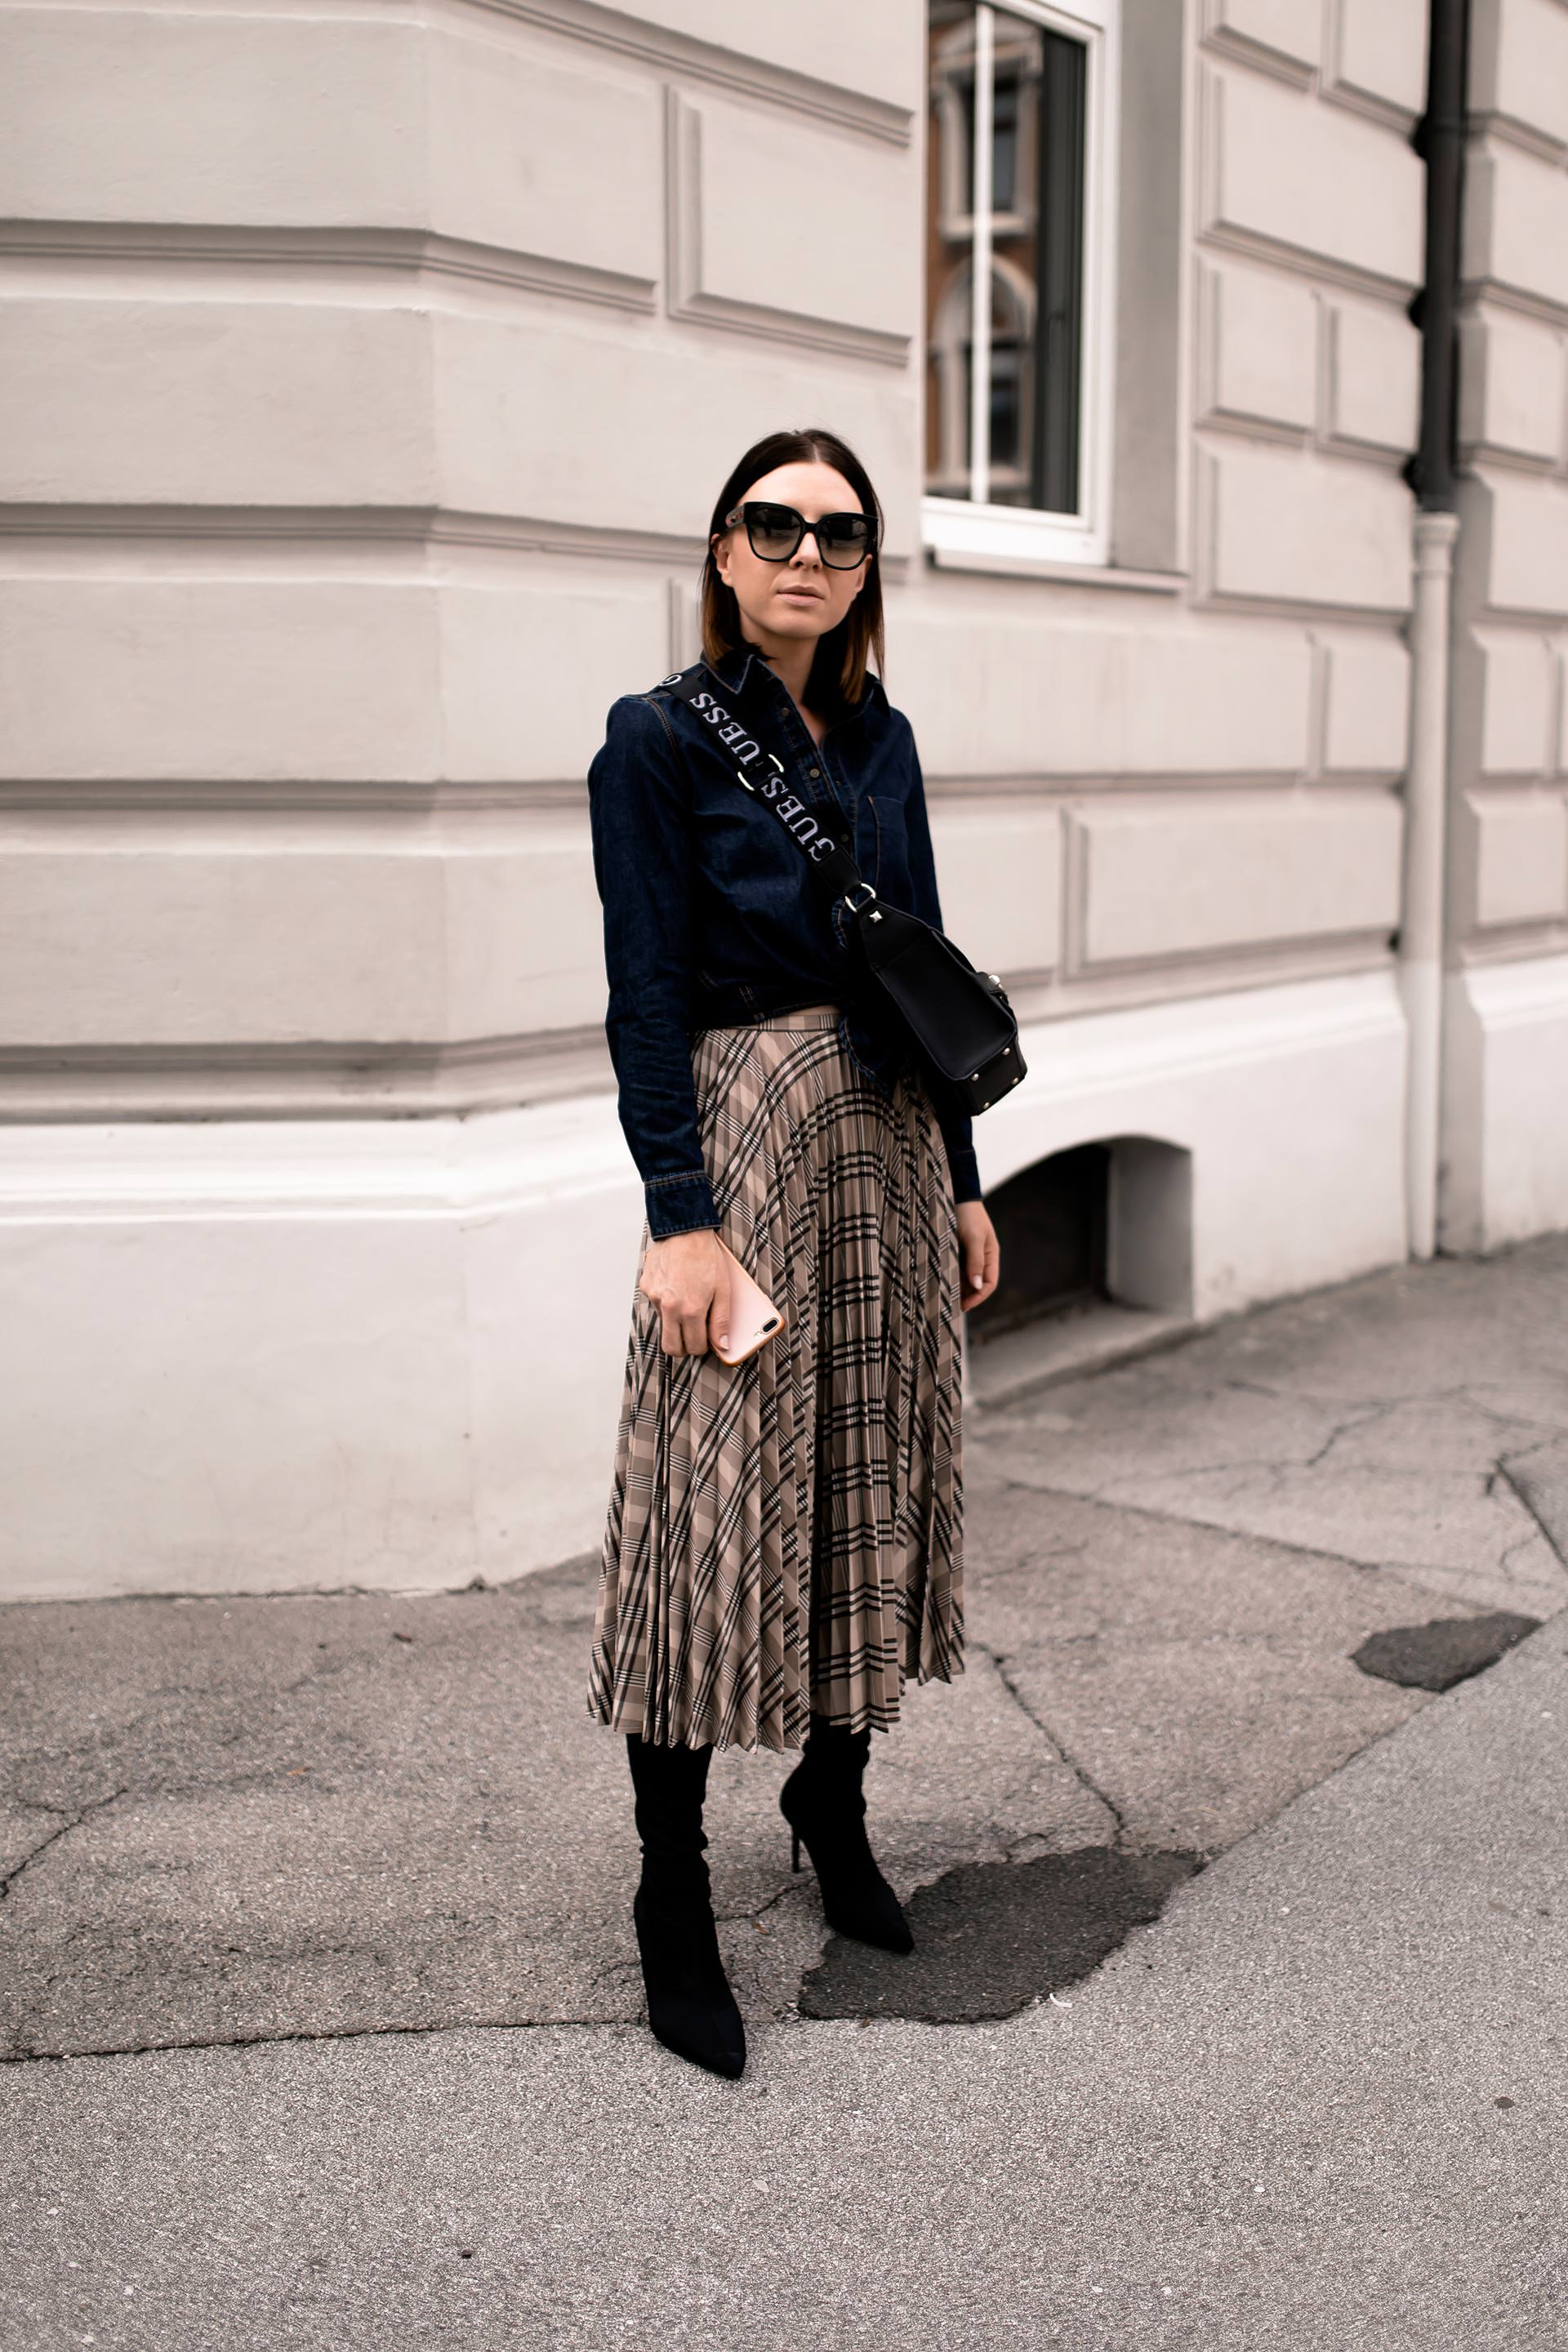 Pin von Alexandra auf Outfits in 2019 | Outfit ideen